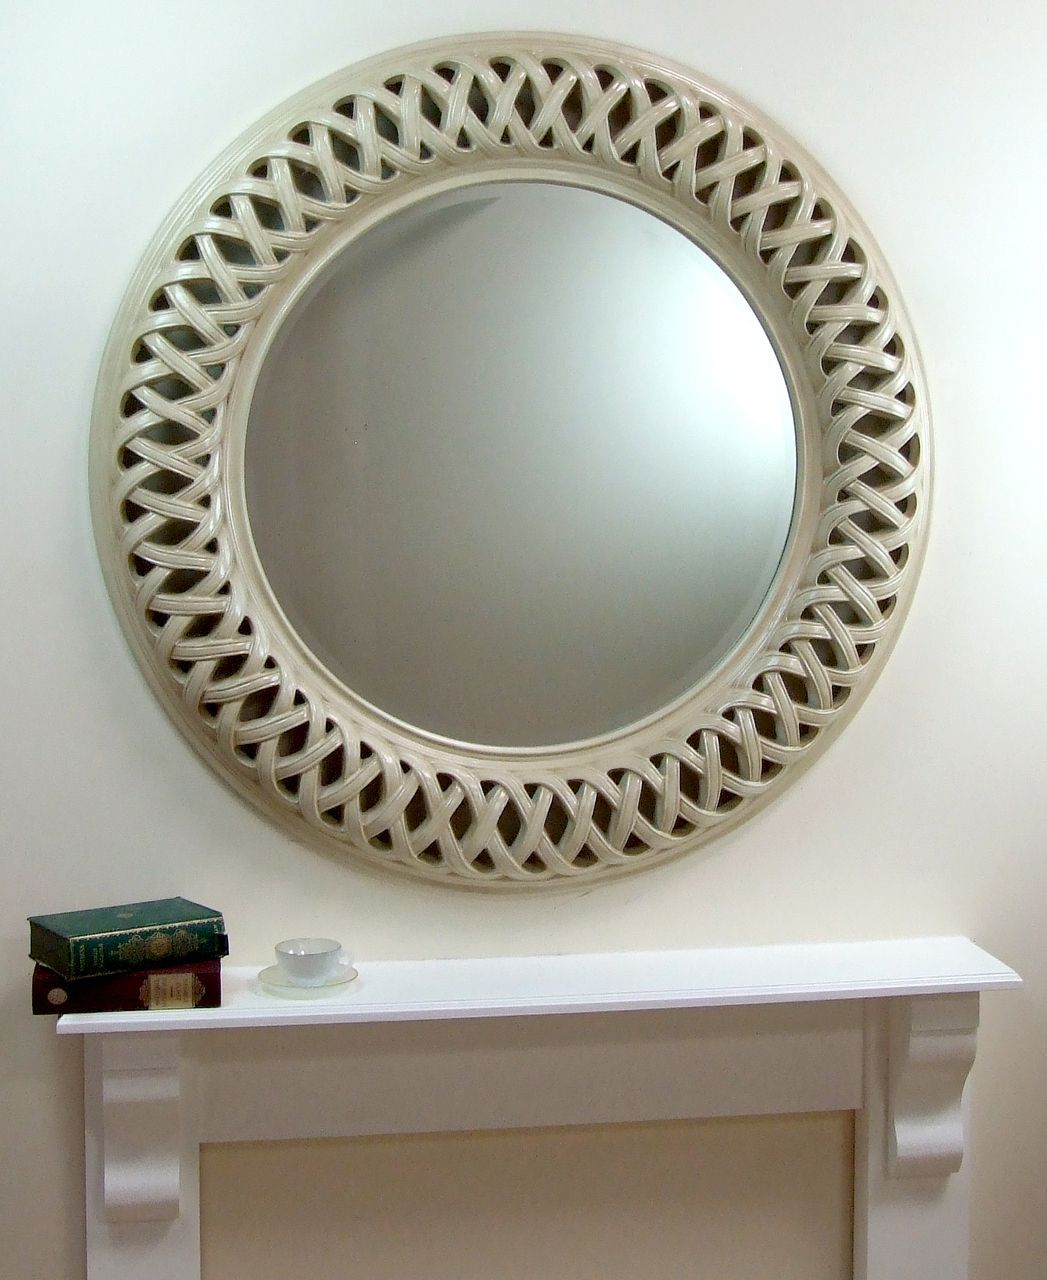 Venice very large round wall mirror ivory frame art deco cm